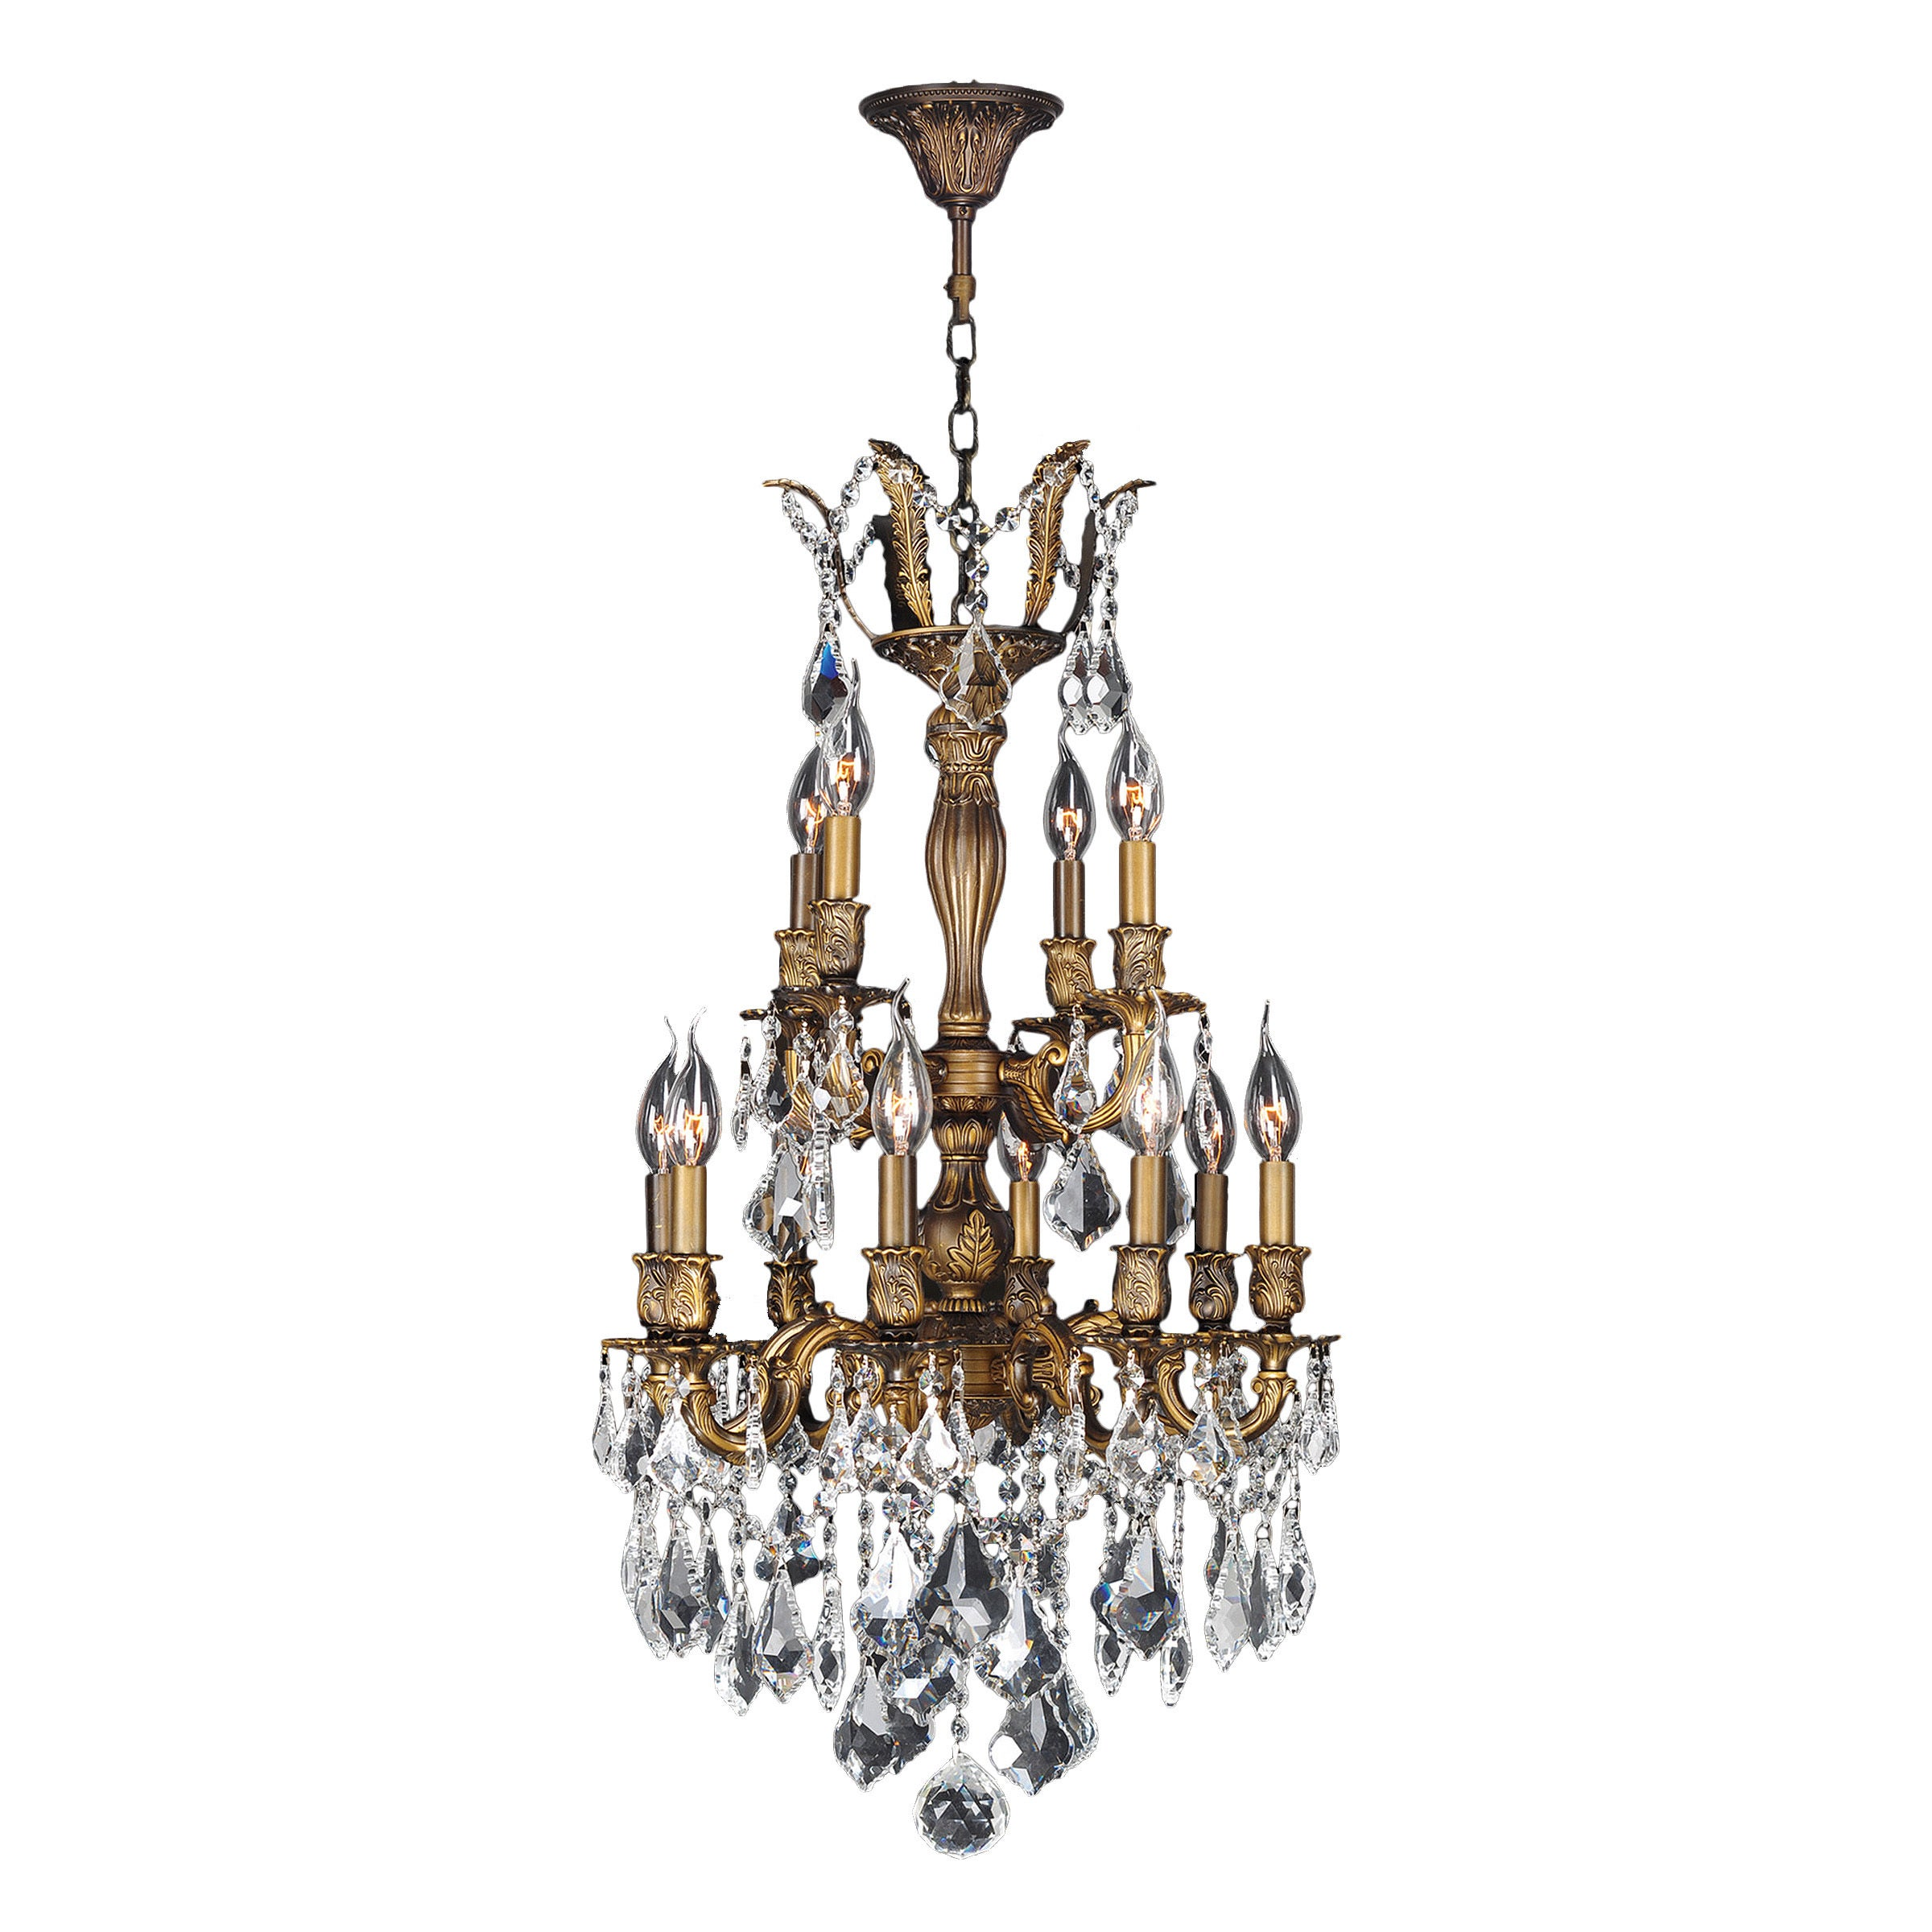 French Imperial Collection 12 Light Antique Bronze Finish...